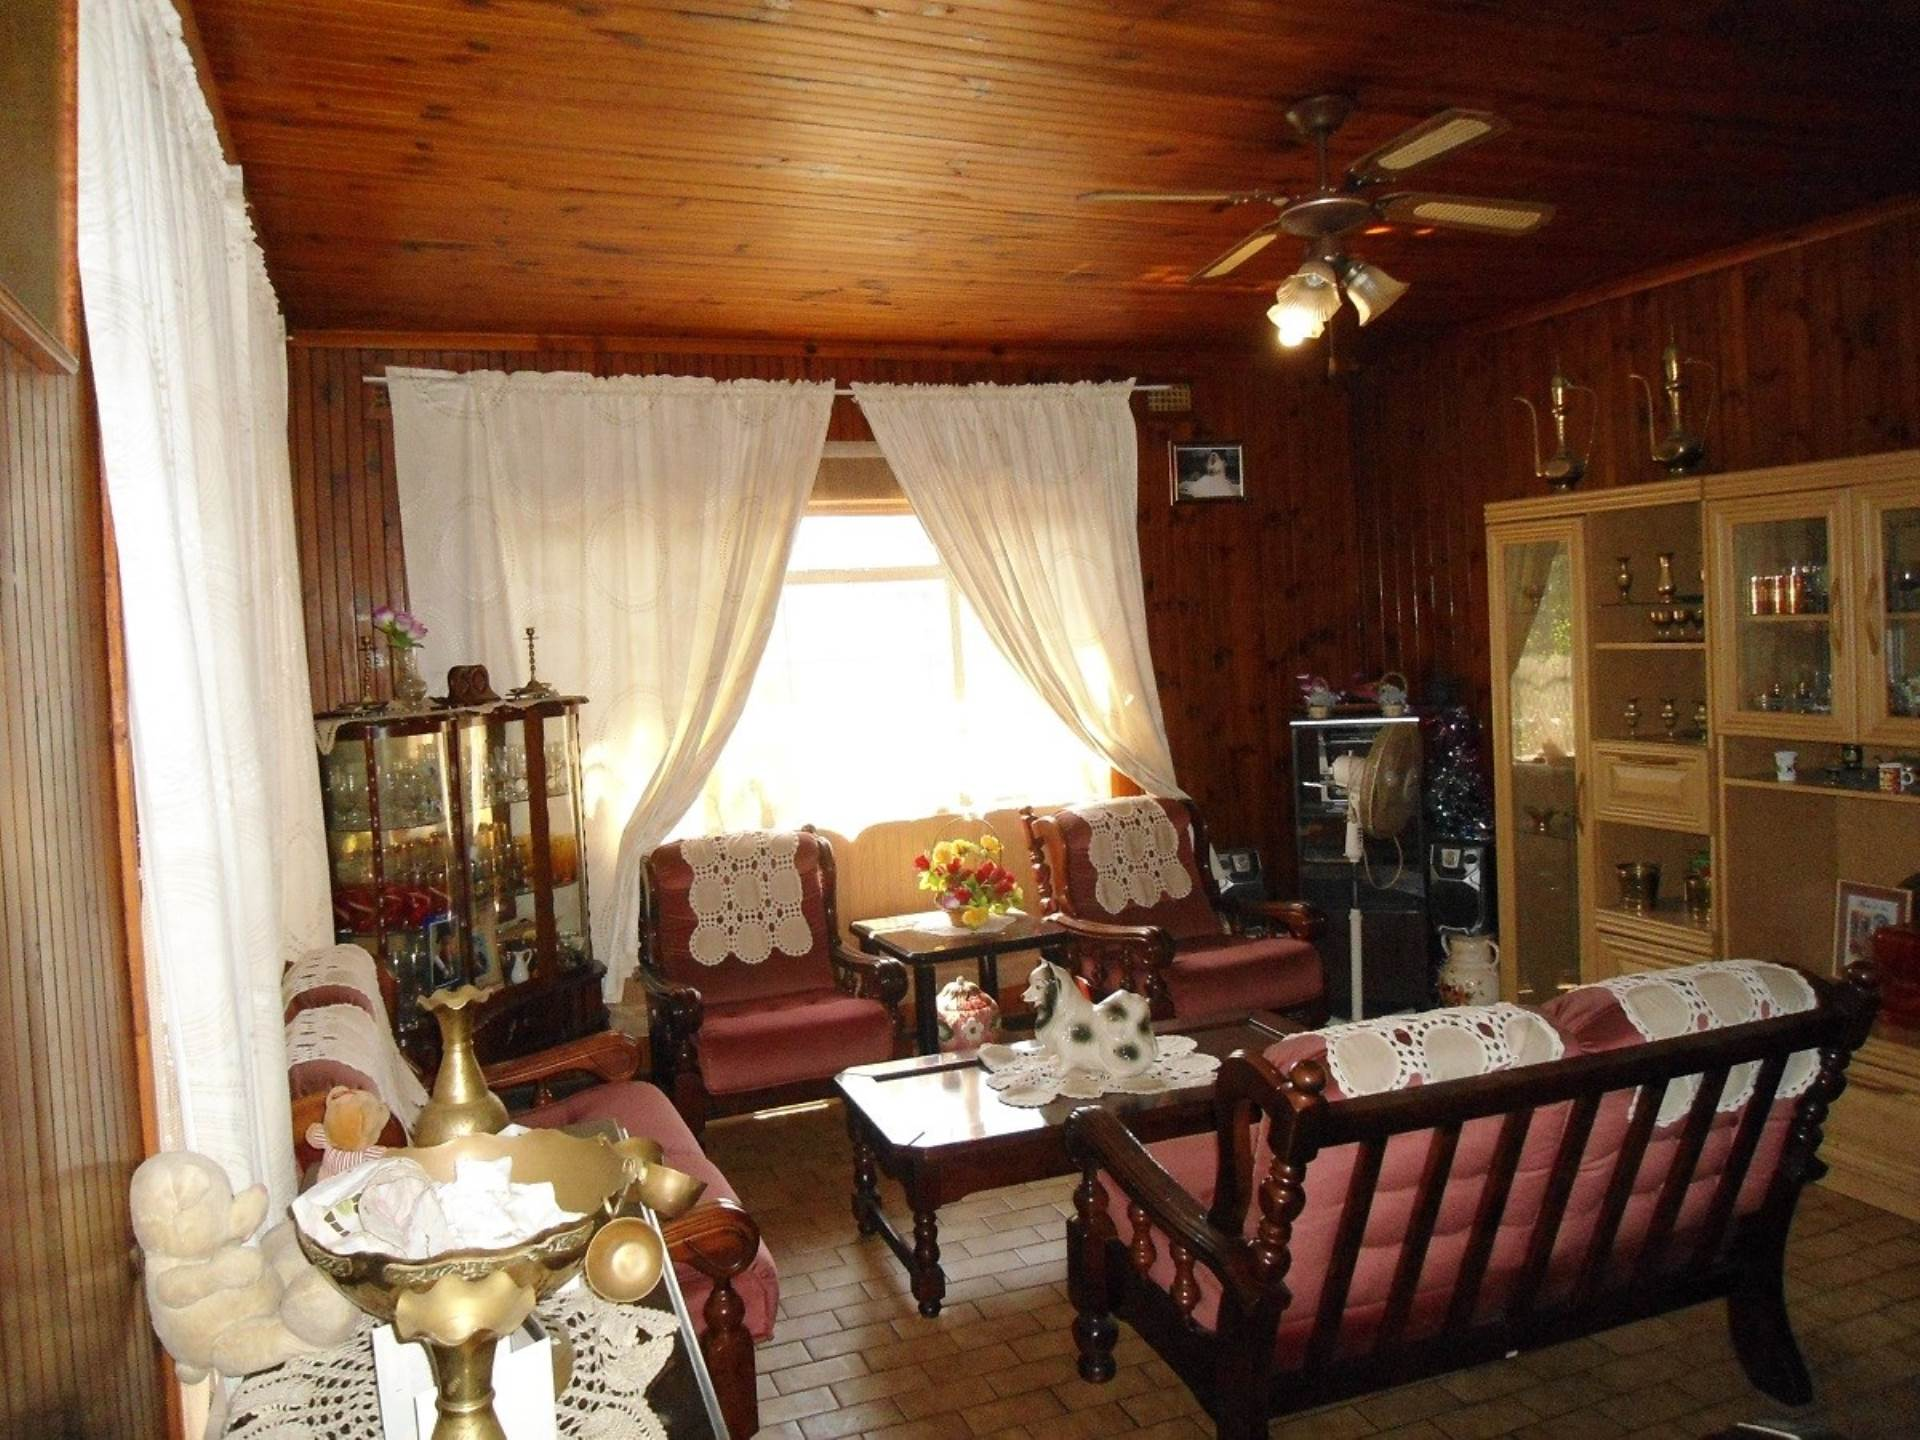 3 BedroomHouse For Sale In Leonsdale